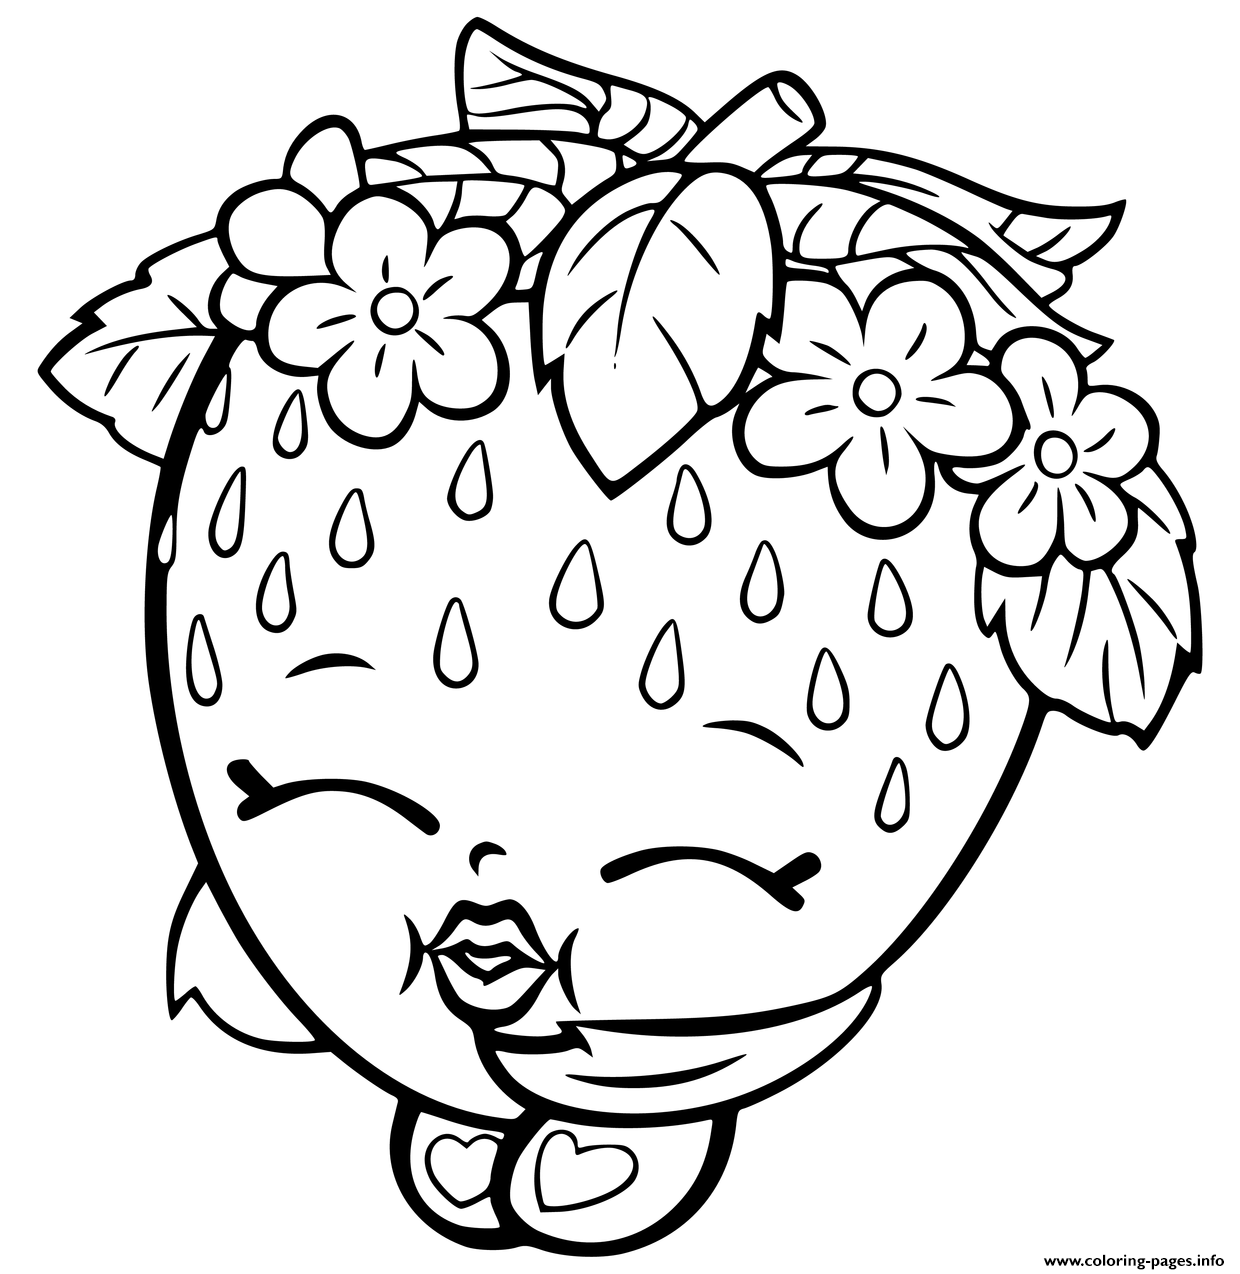 Shopkins coloring pages to print out - Shopkins Coloring Pages To Print Out 36